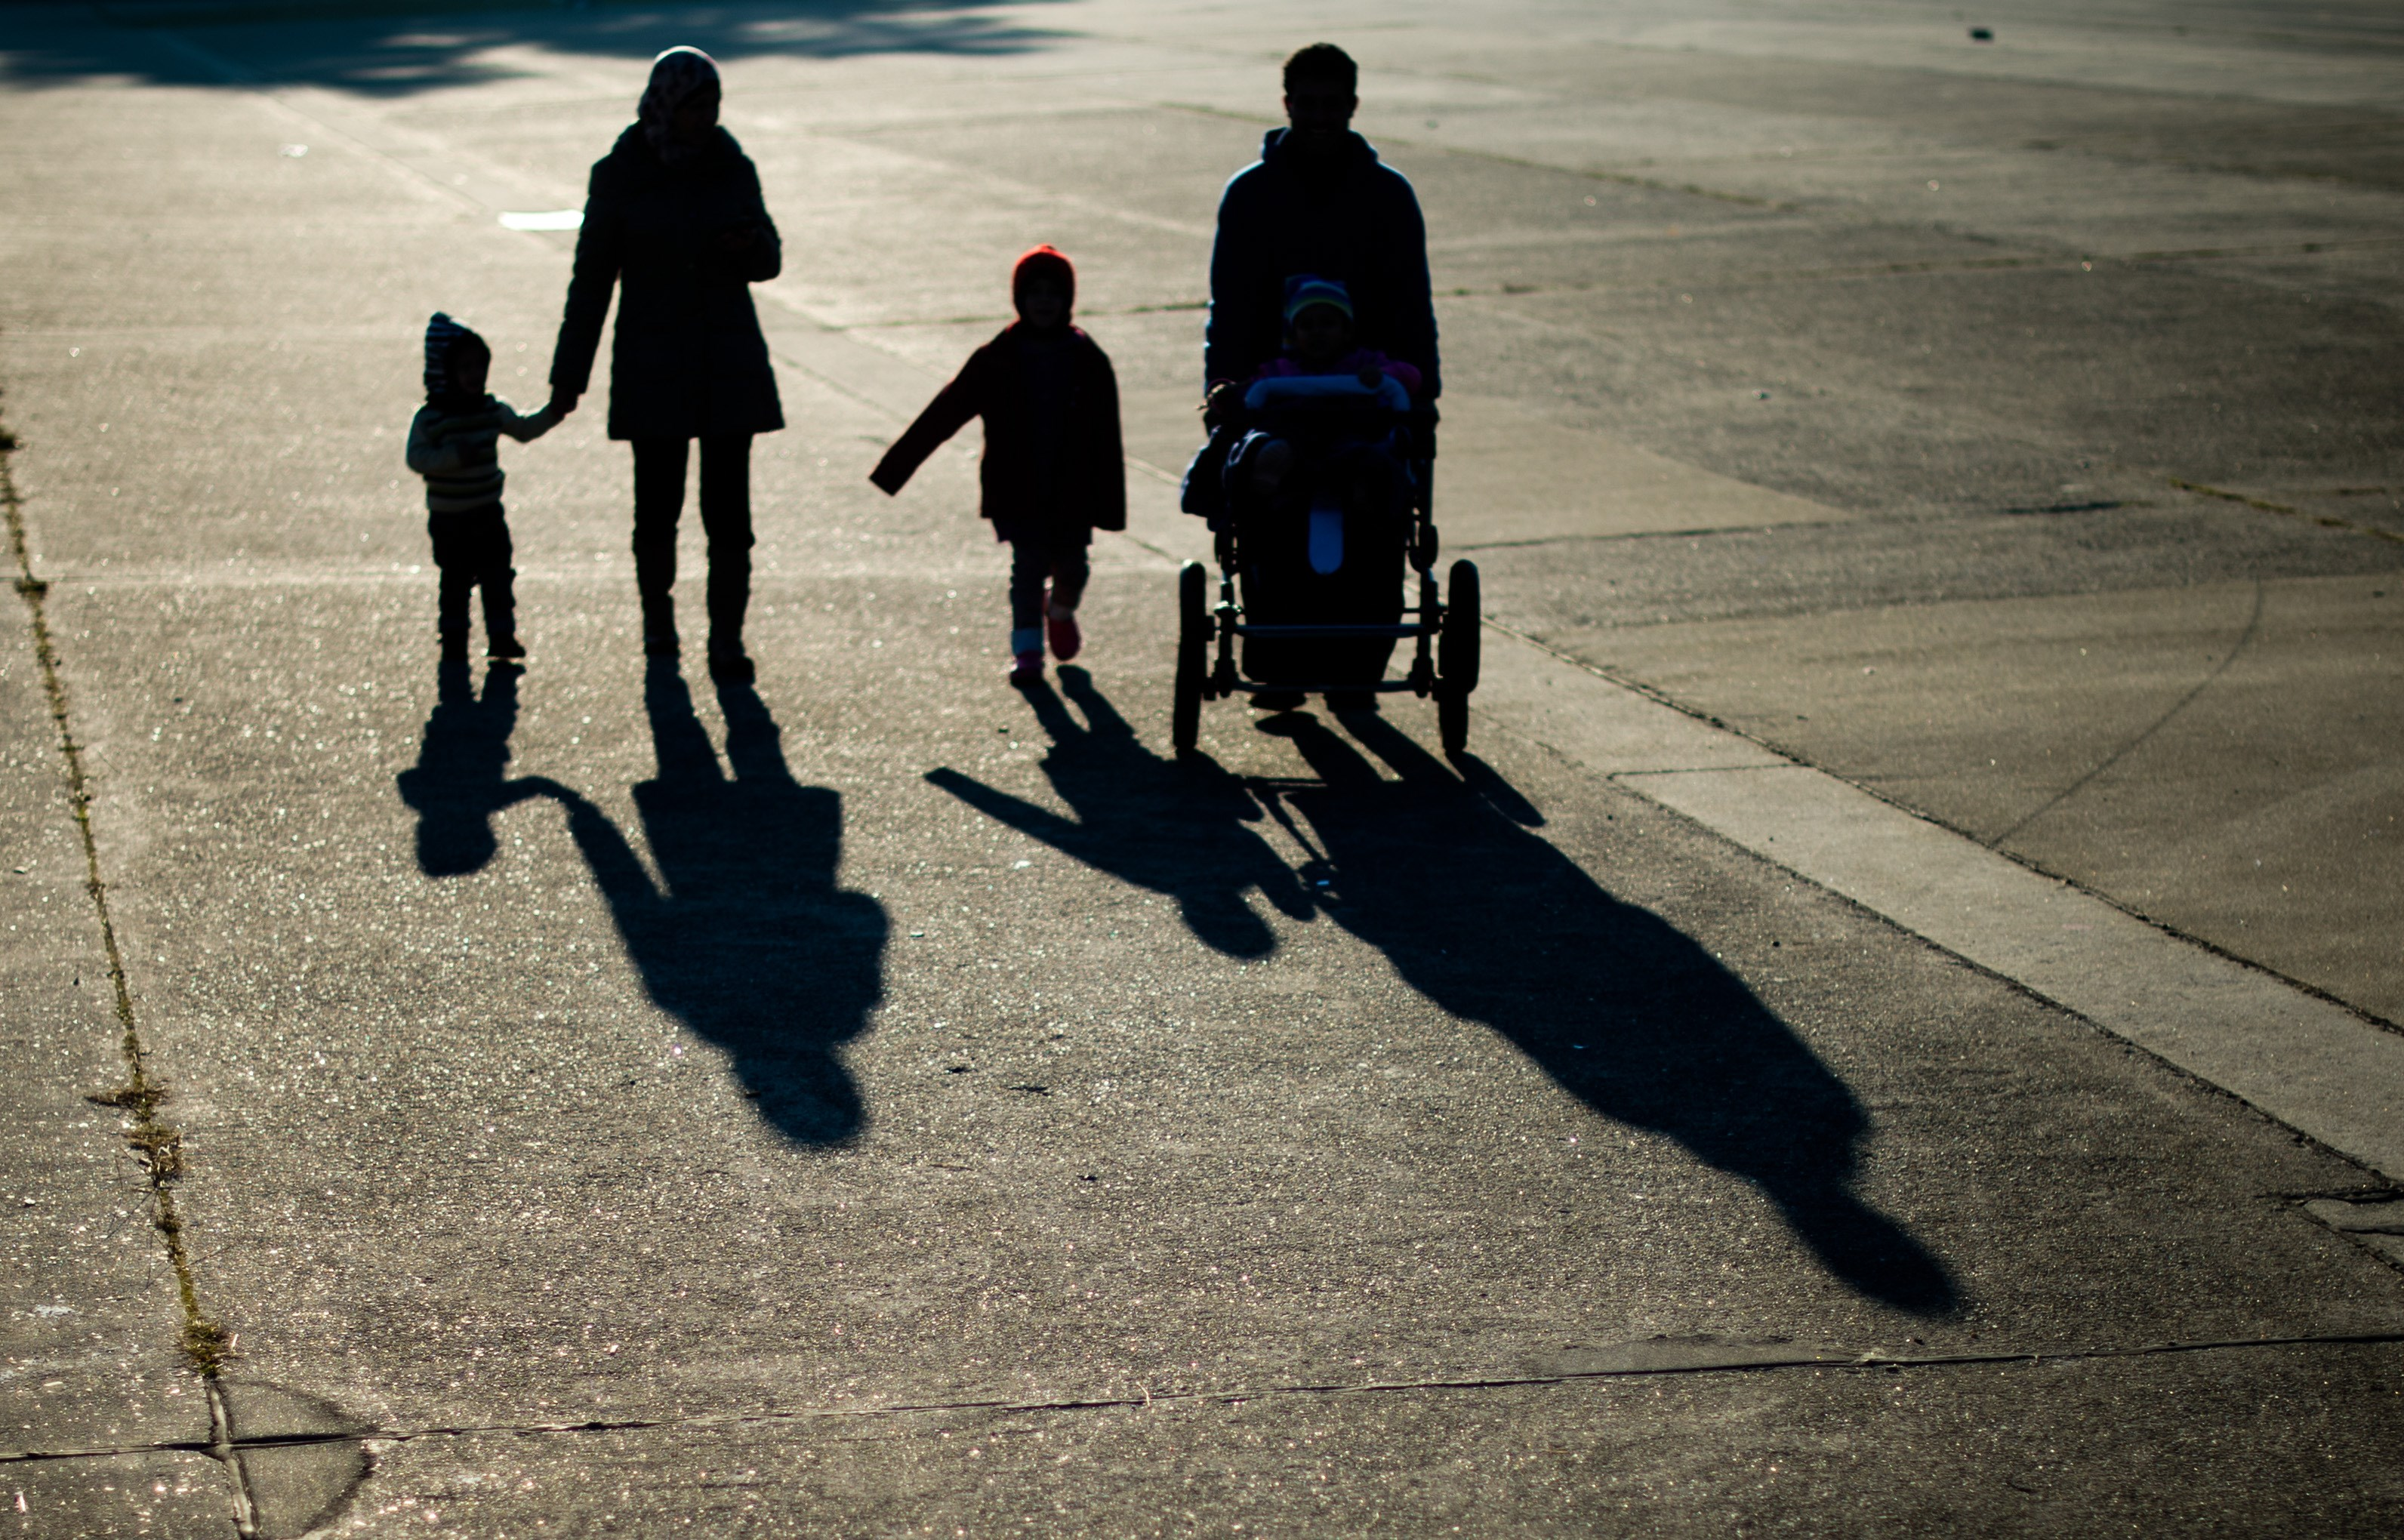 A refugee family from Syria cast long shadows as they walk  in Ehra-Lessien, in central Germany, on Nov. 3, 2015